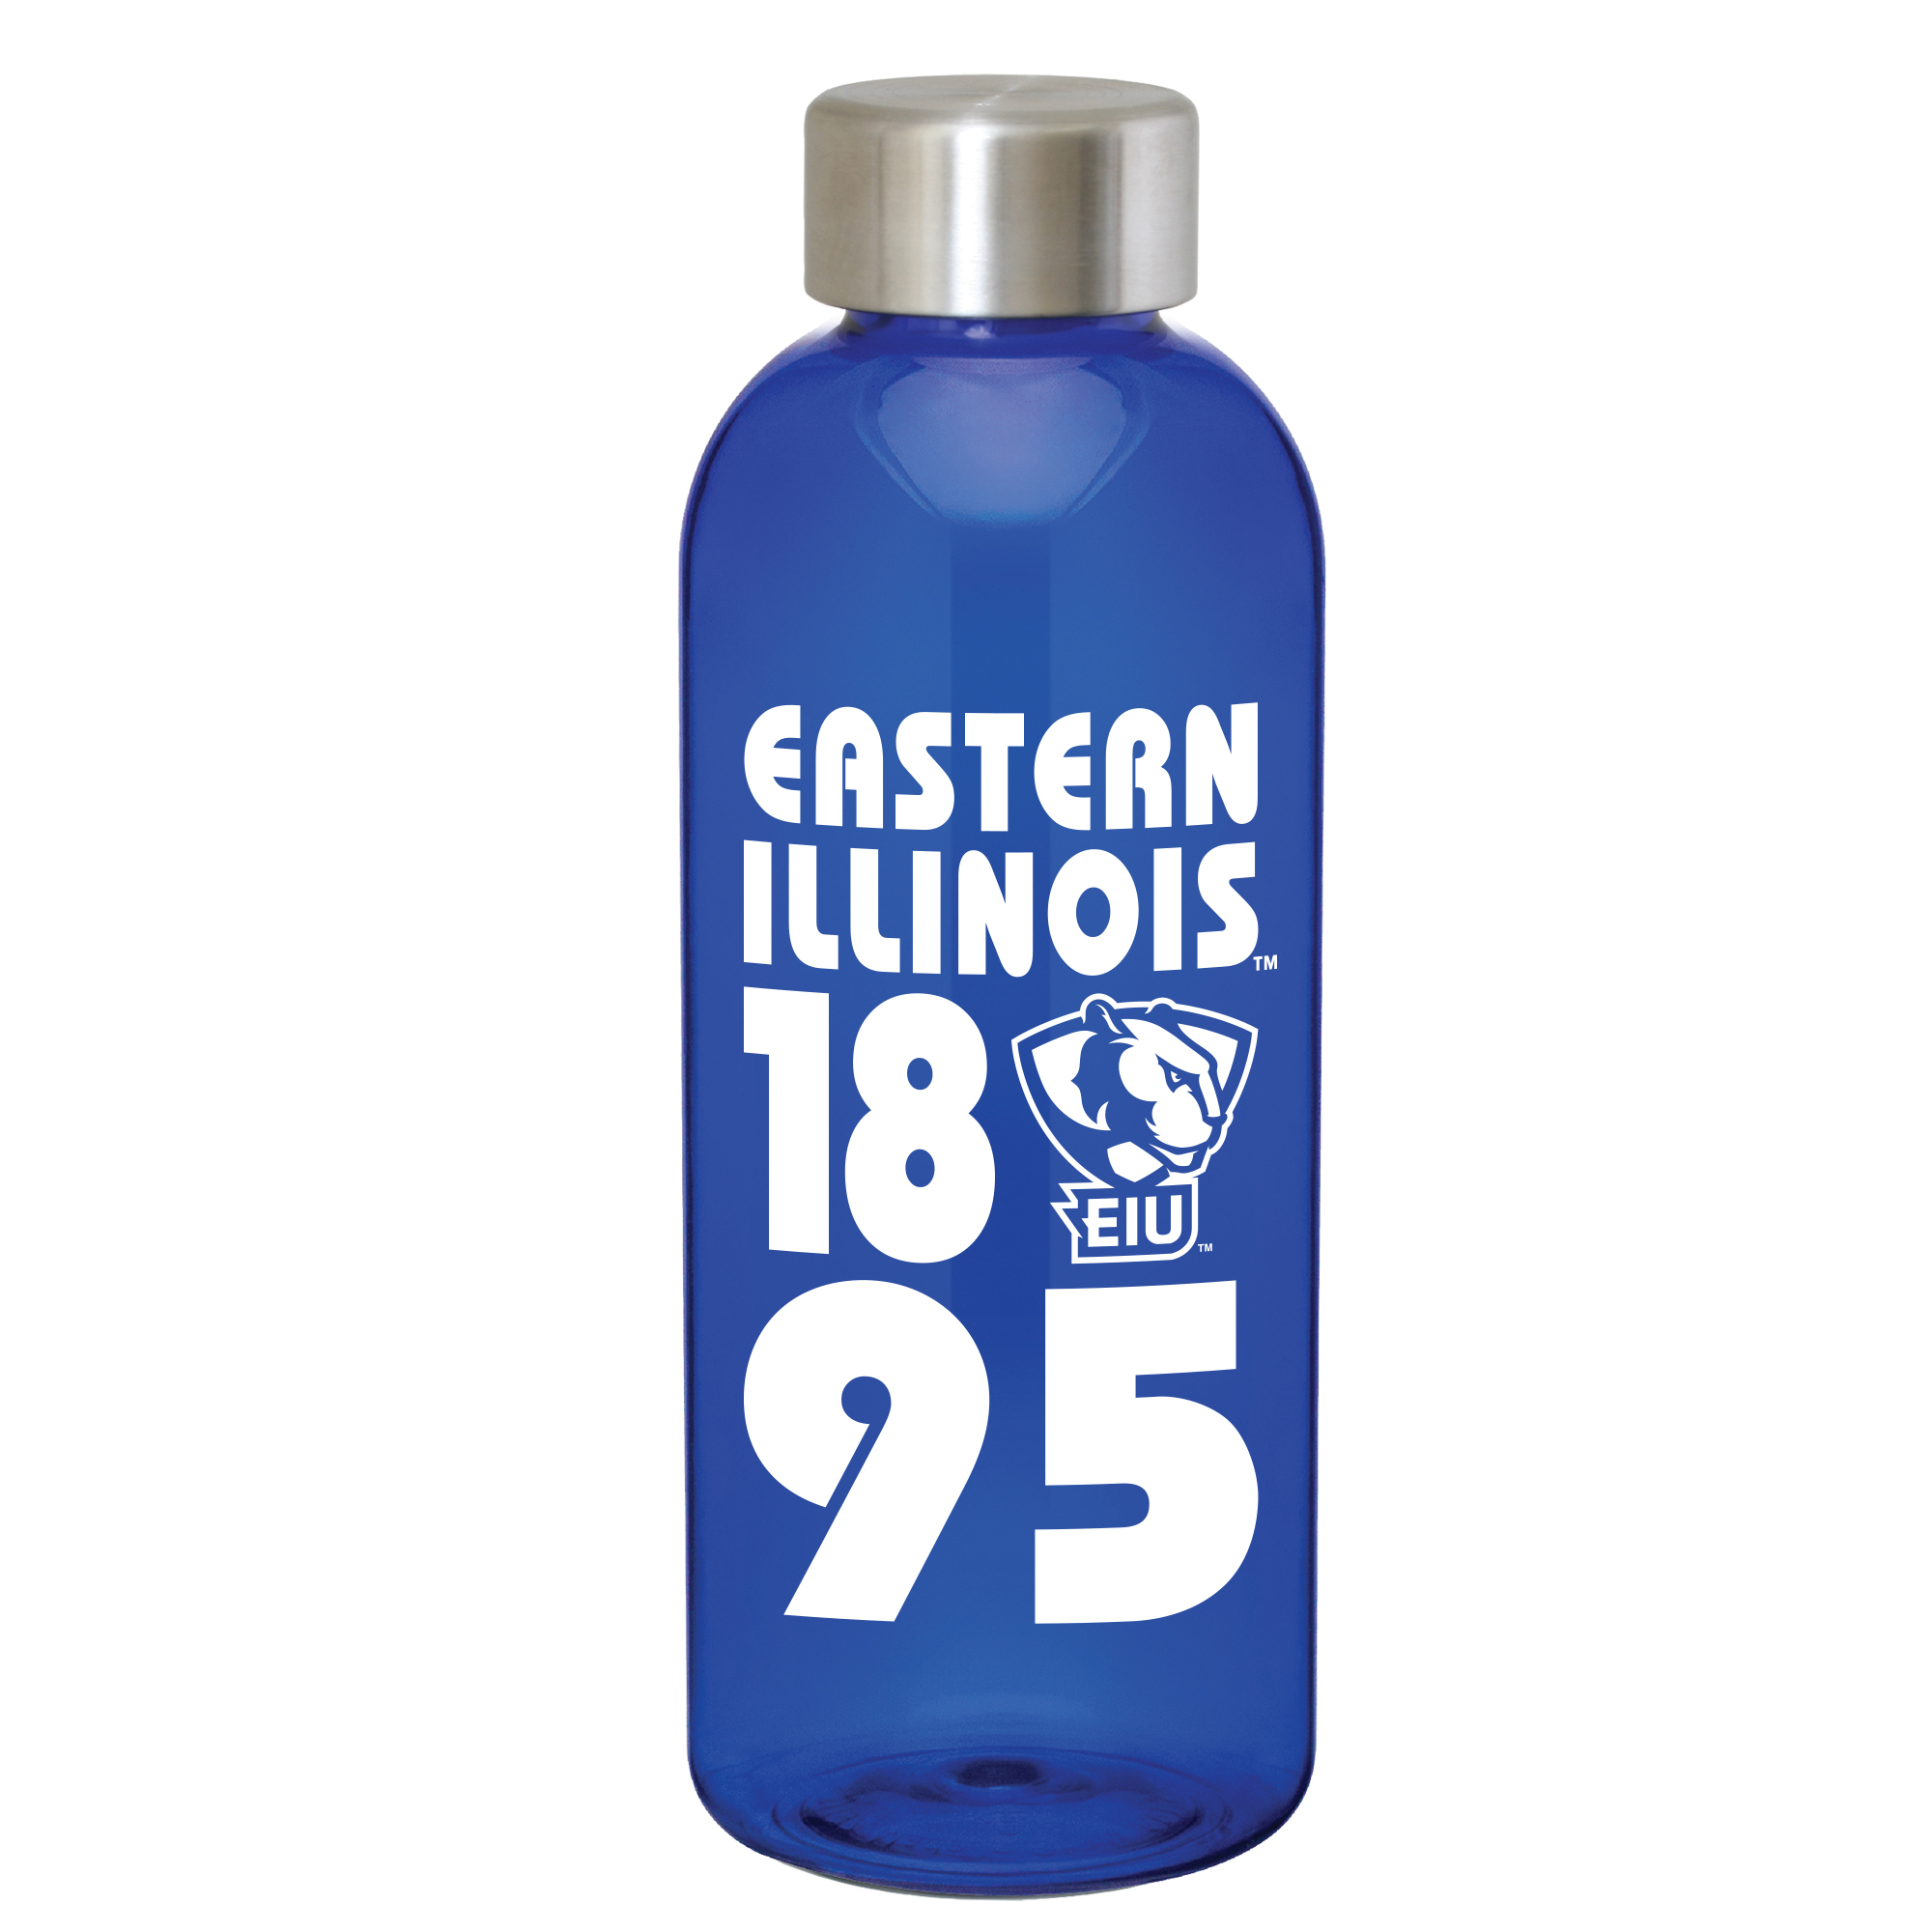 Image For EASTERN ILLINOIS 1895 SCREW BOTTLE